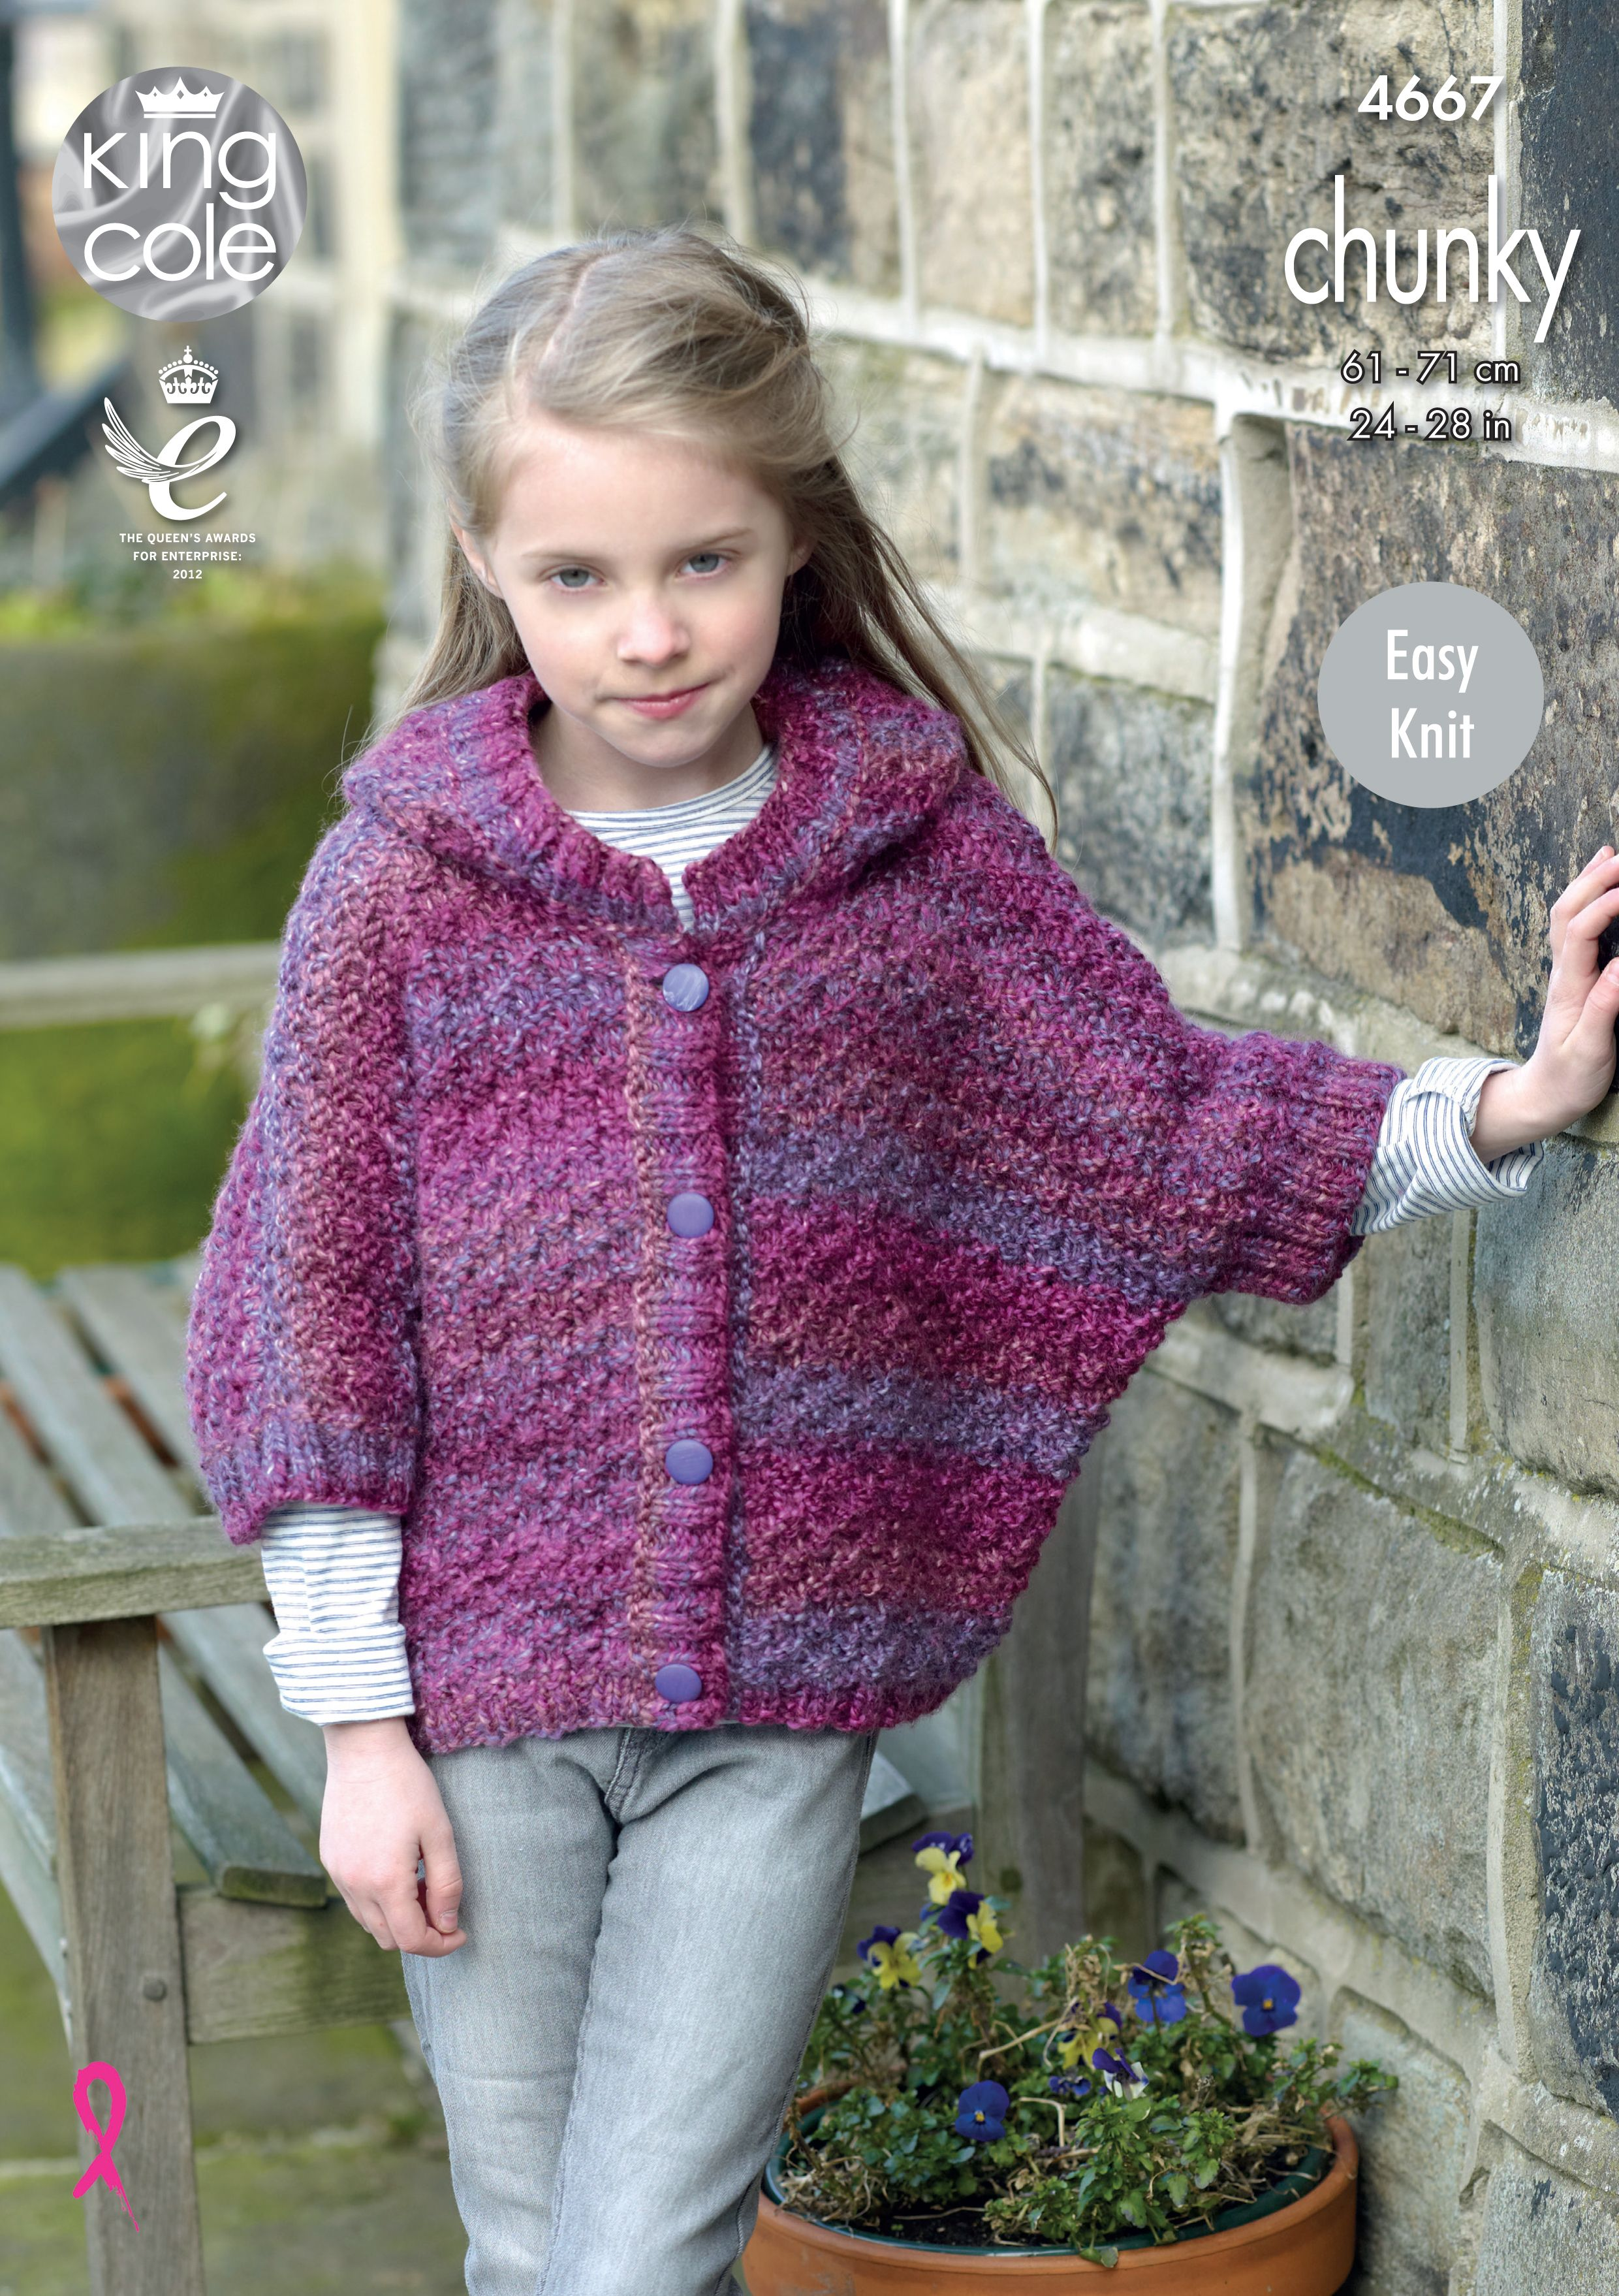 Ponchos Knitted in Corona Chunky - King Cole   bufandas   Pinterest ...